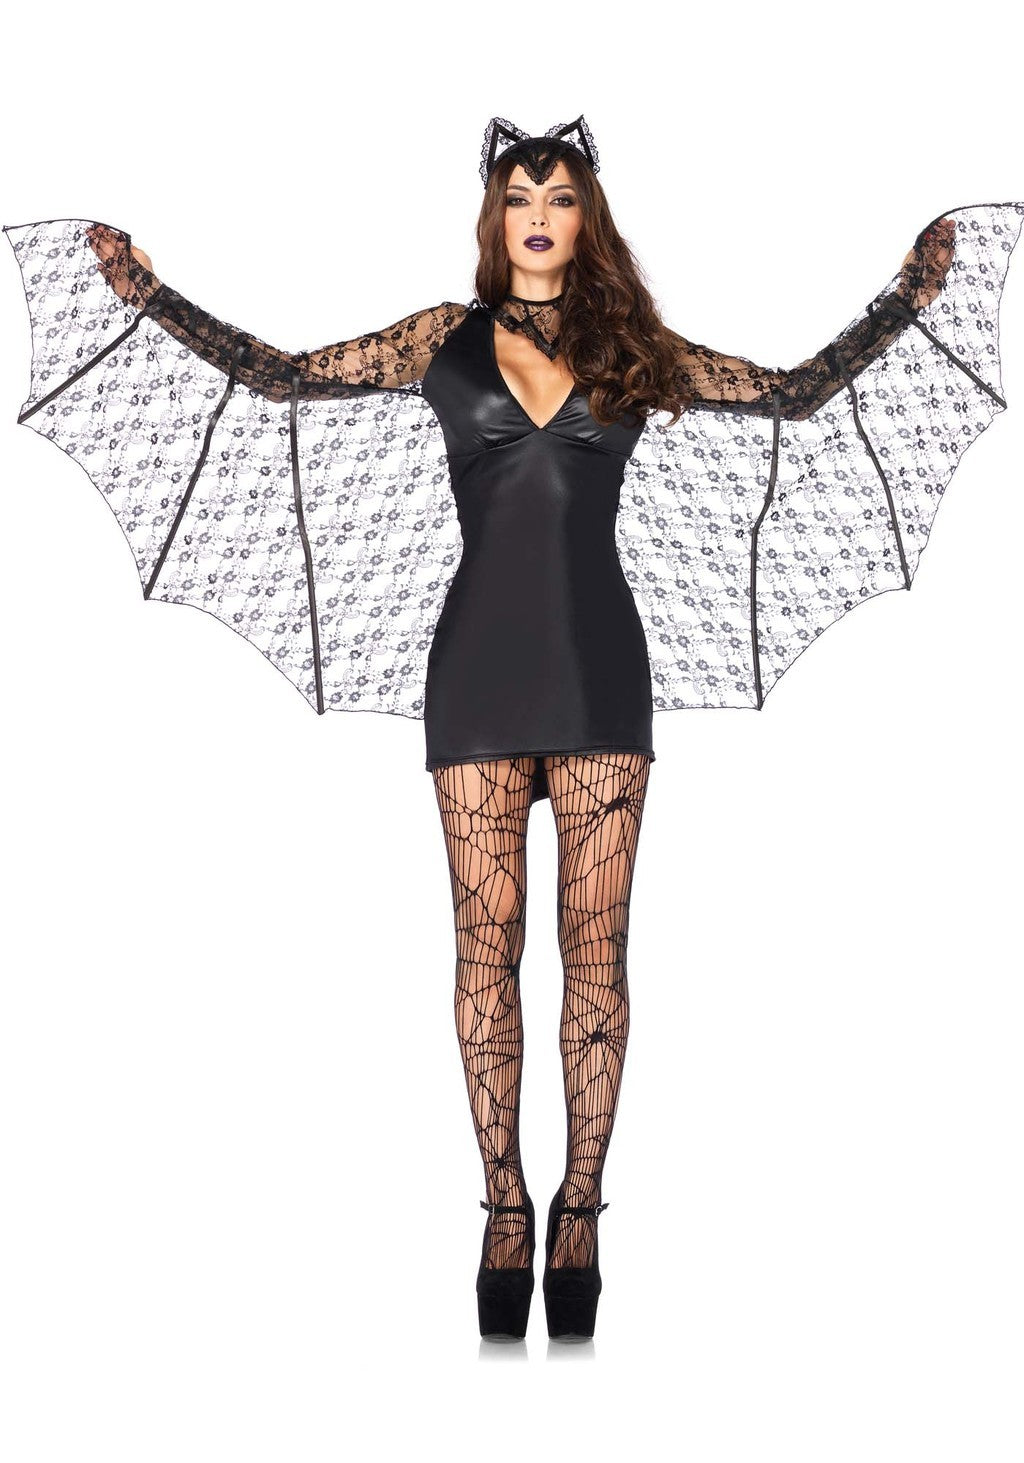 ... of outfits but you can never really fail with a gothic/corpse bride/bat costume; theyu0027re just classics (and slightly more creative than a witch.  sc 1 st  Leggsington & Halloween Costume Ideas 2016 u2013 Leggsington